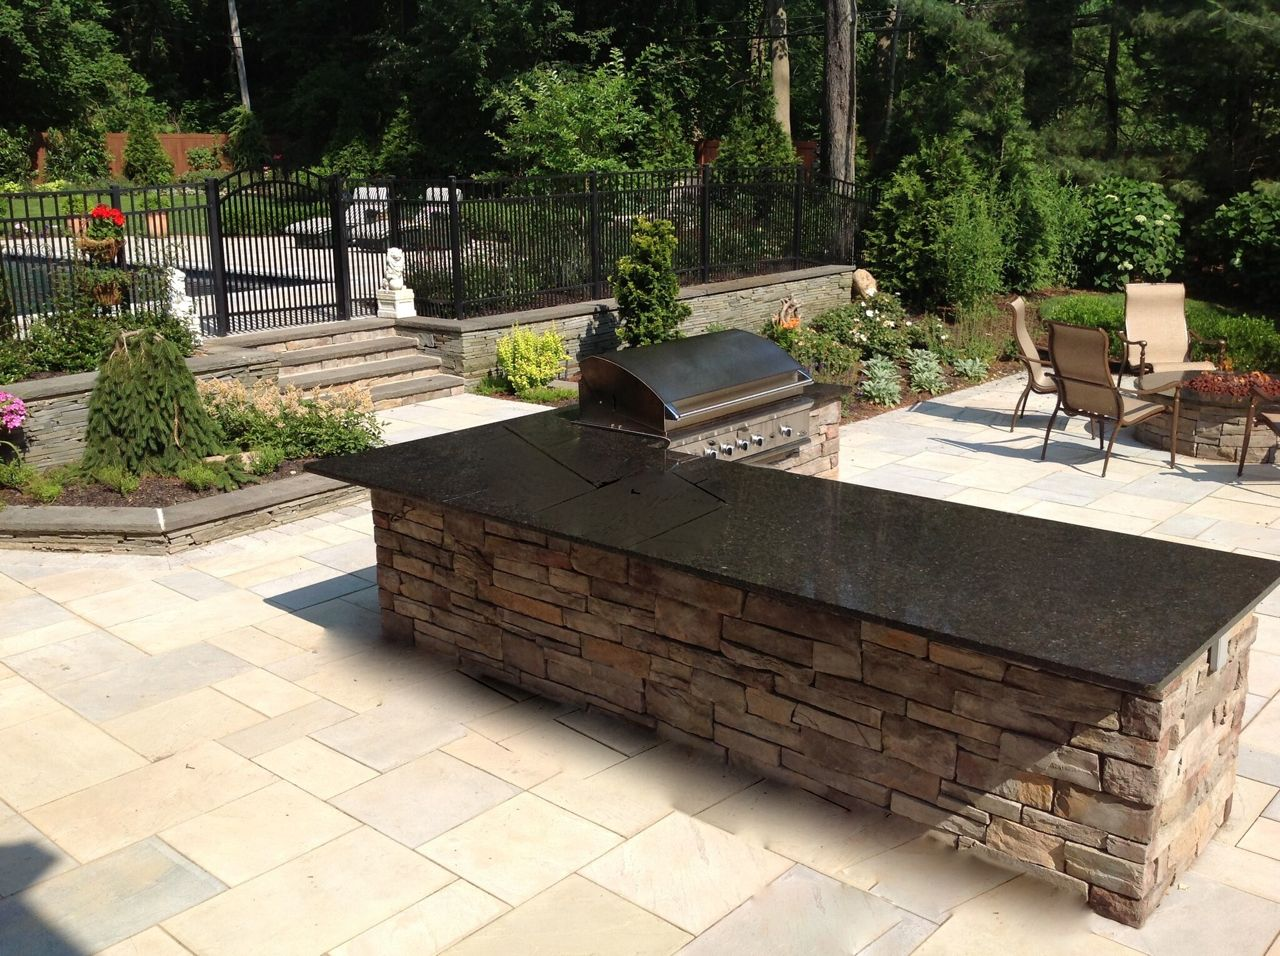 Granite-Topped Outdoor Kitchen: